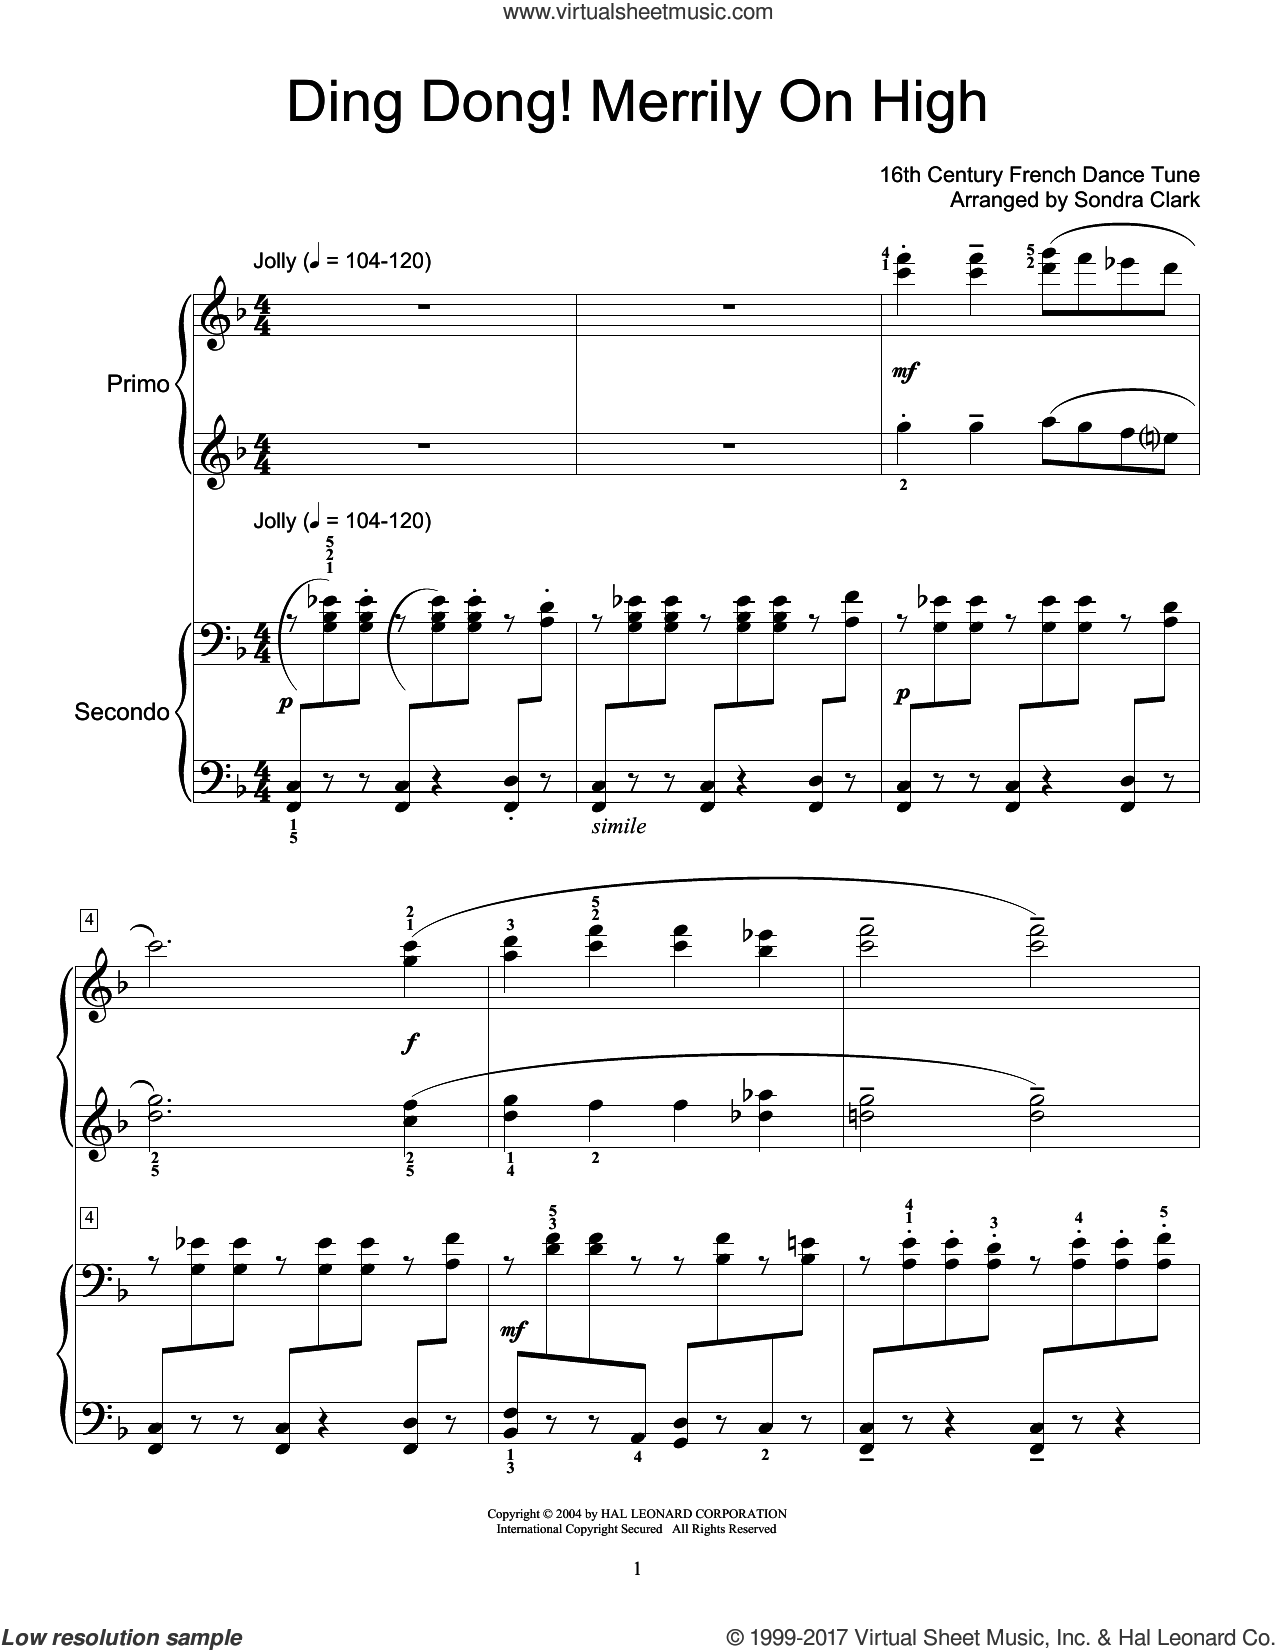 Ding Dong! Merrily On High! sheet music for piano four hands, intermediate skill level